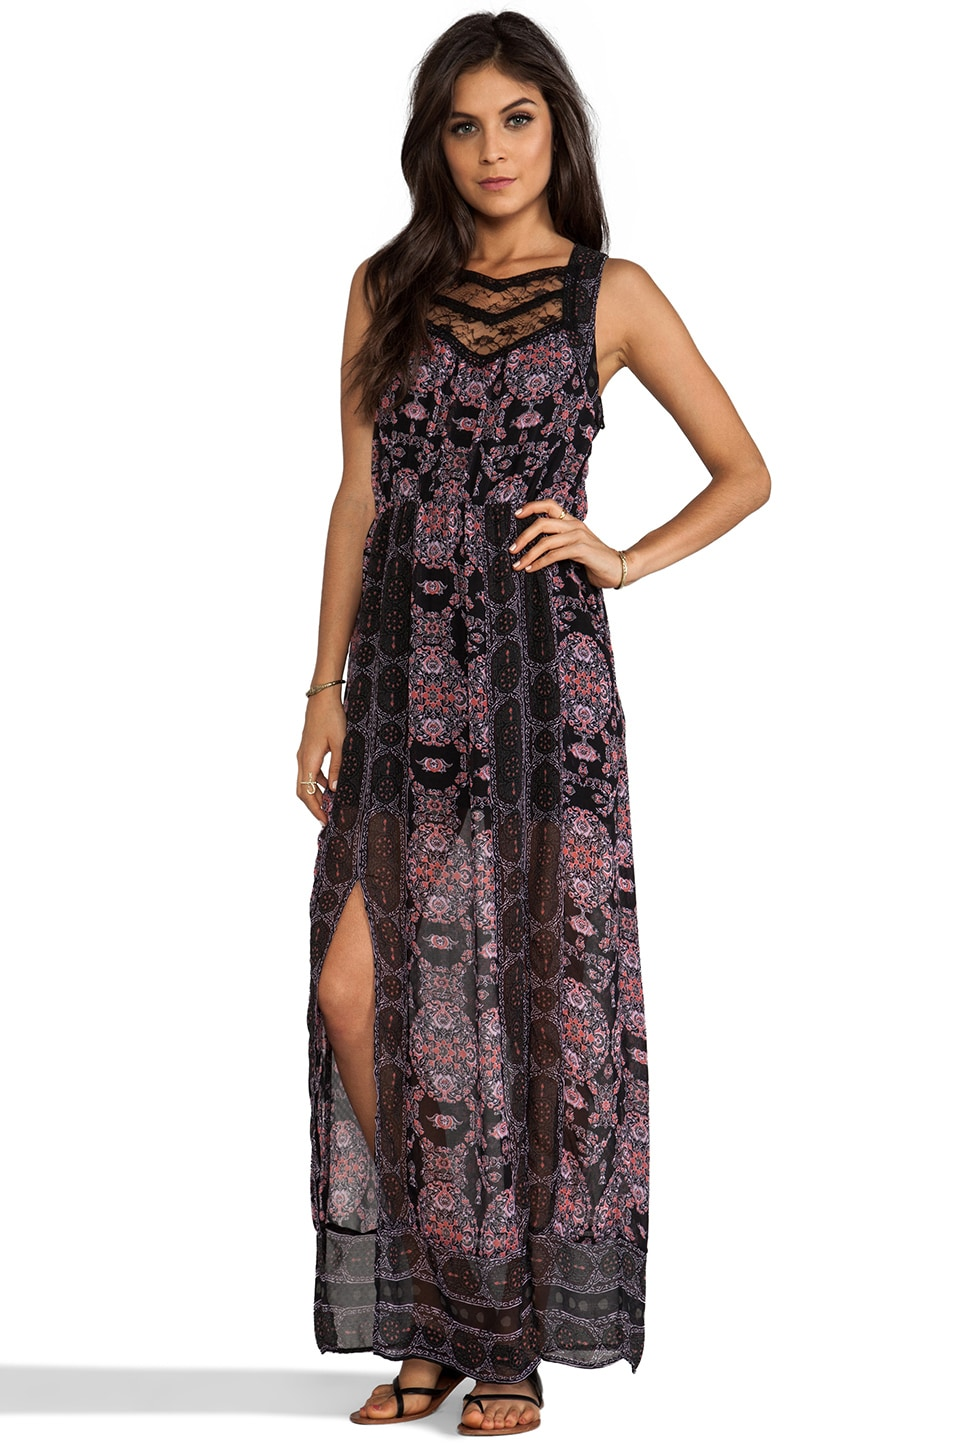 Free People Moroccan Printed Maxi Dress in Black Combo